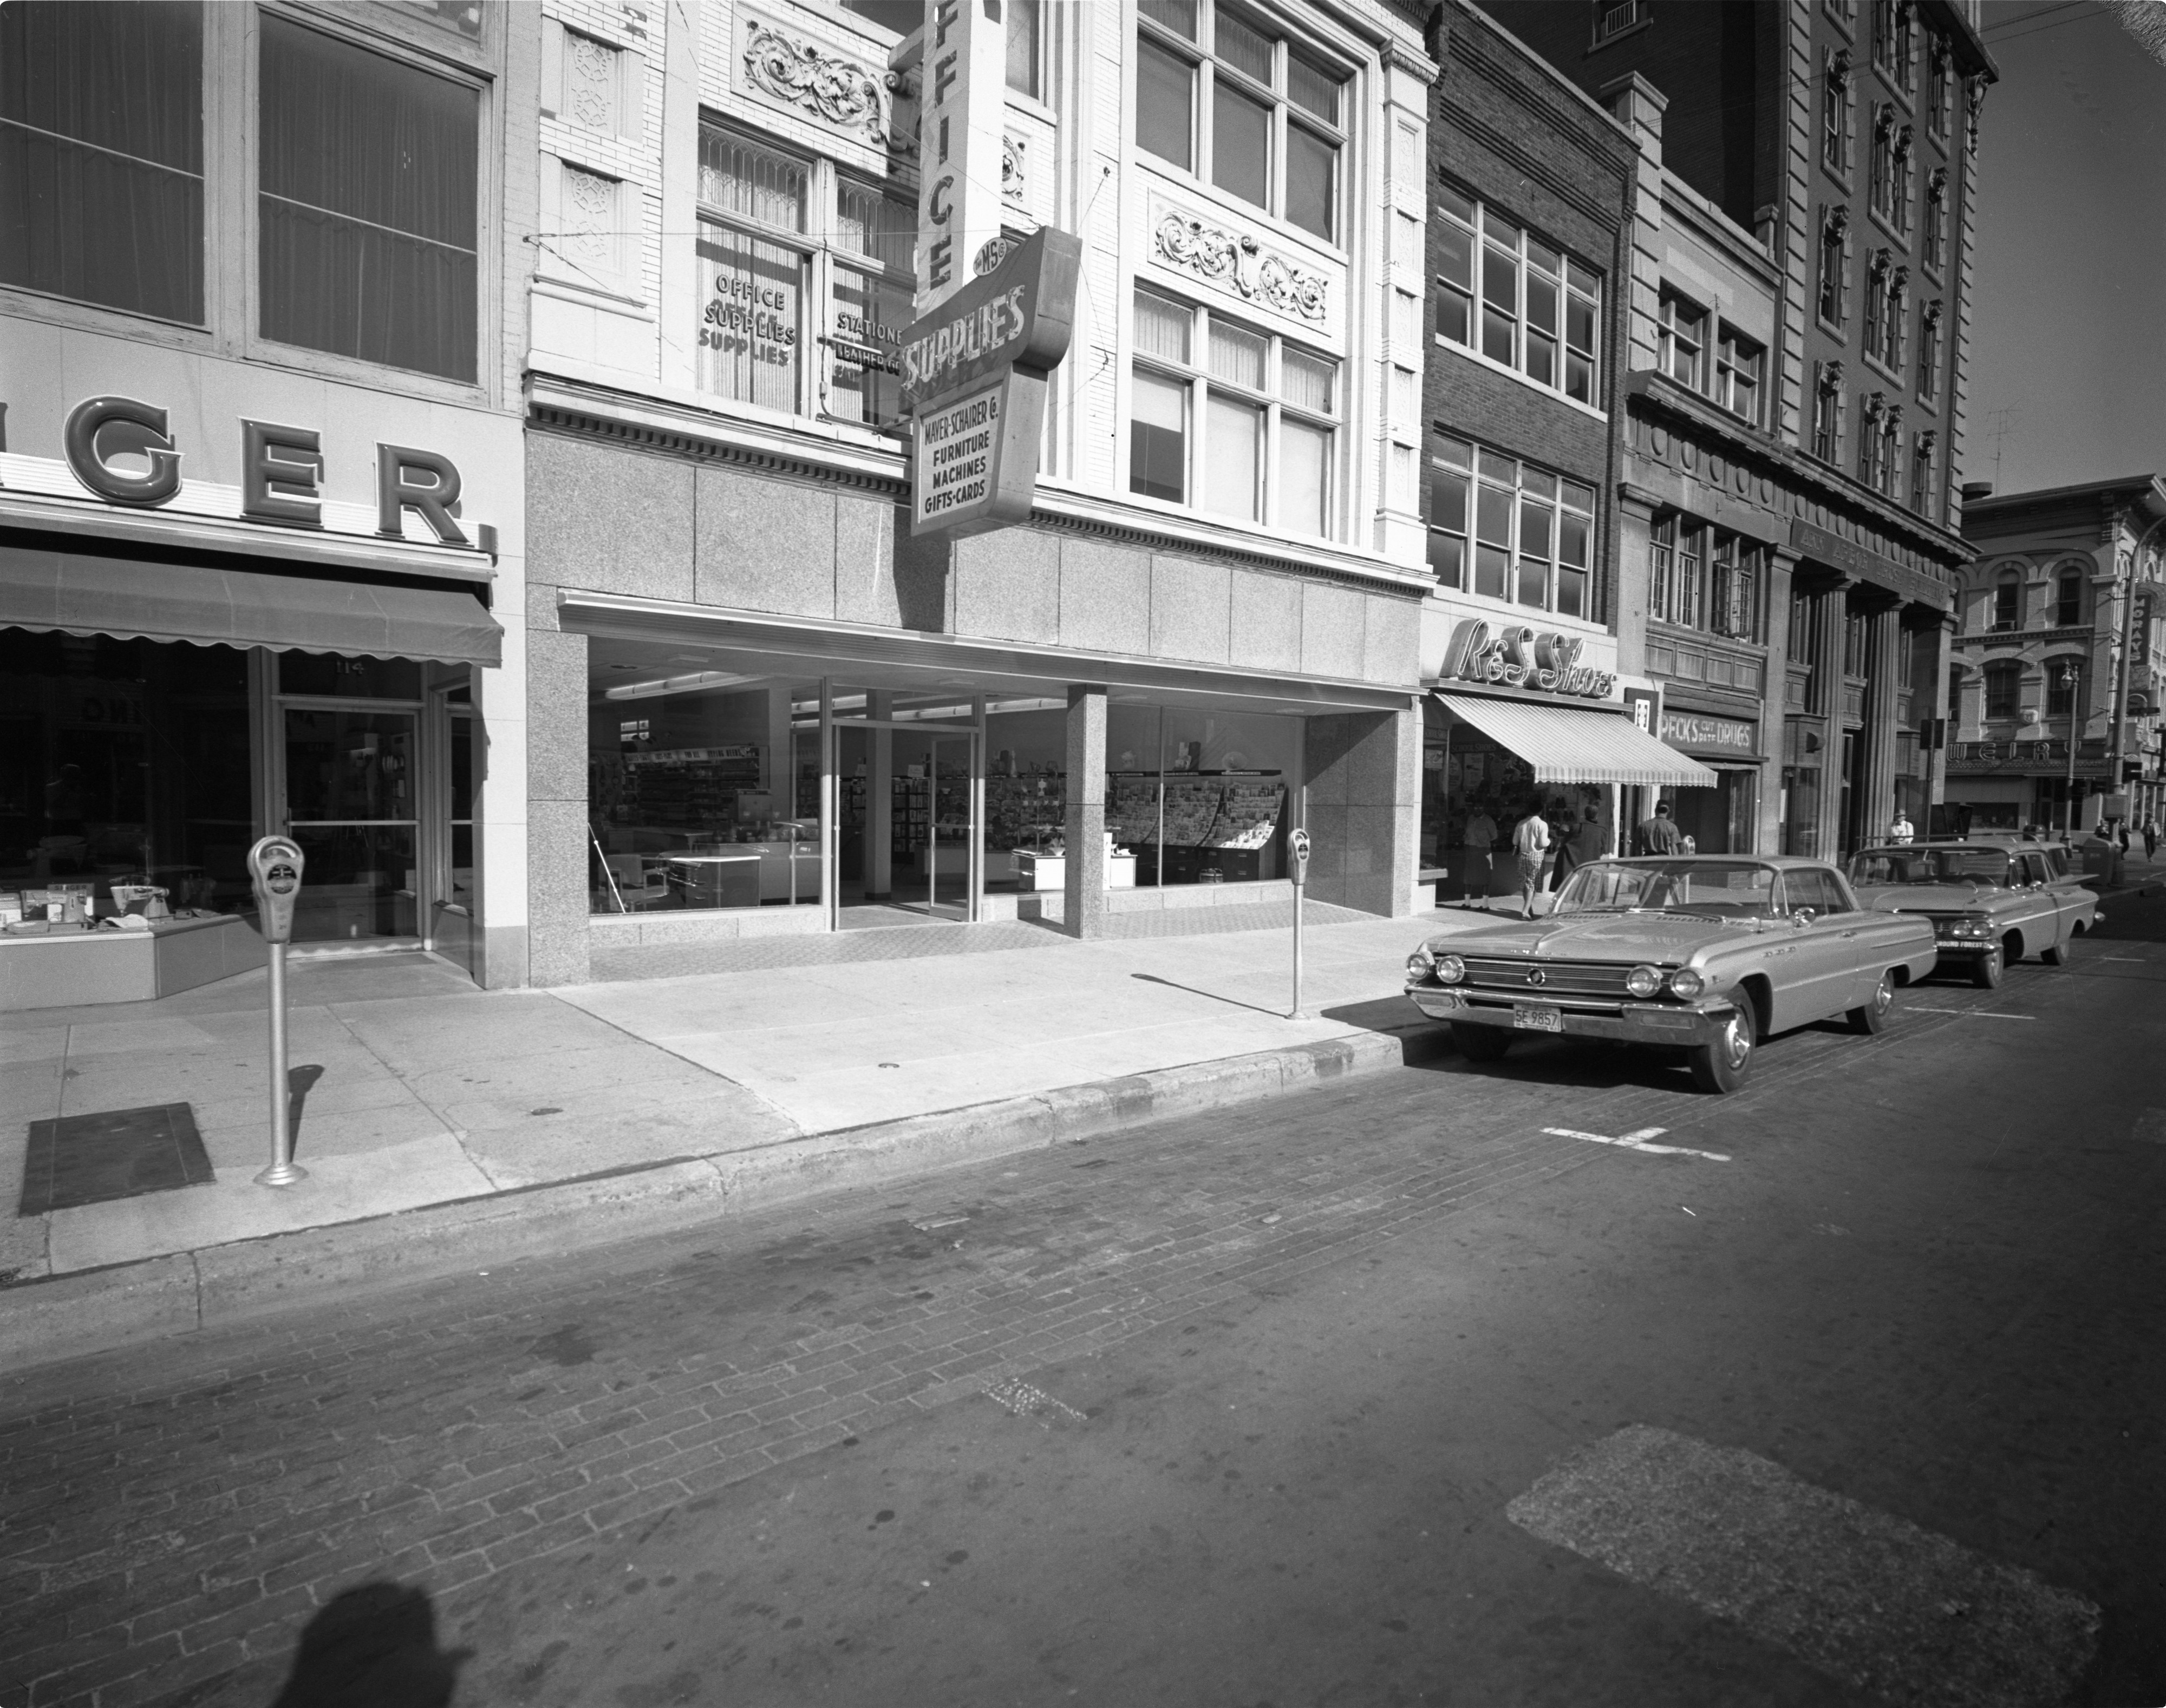 Newly Remodeled Exterior Of Mayer-Schairer, August 18, 1962 image